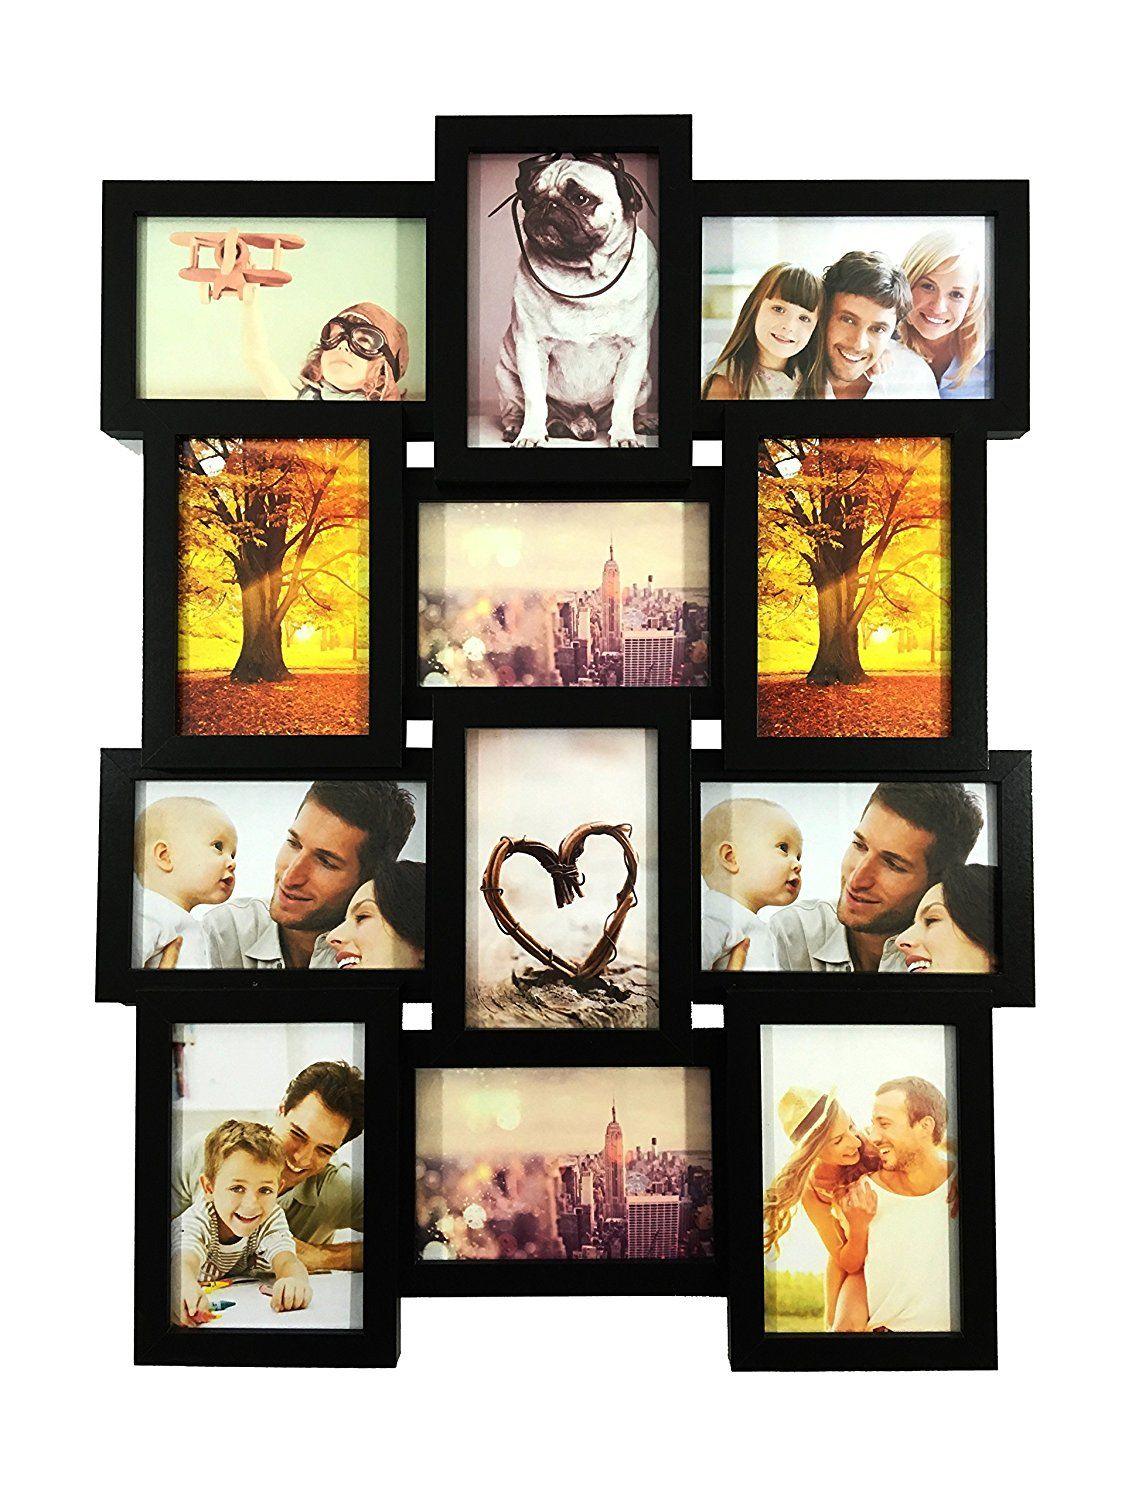 Bestbuy Frames 12 4x6 Inch Multiple Opening Wall Hanging Collage Picture Frame Details Can Be F Framed Photo Collage Collage Picture Frames Photo Frame Wall